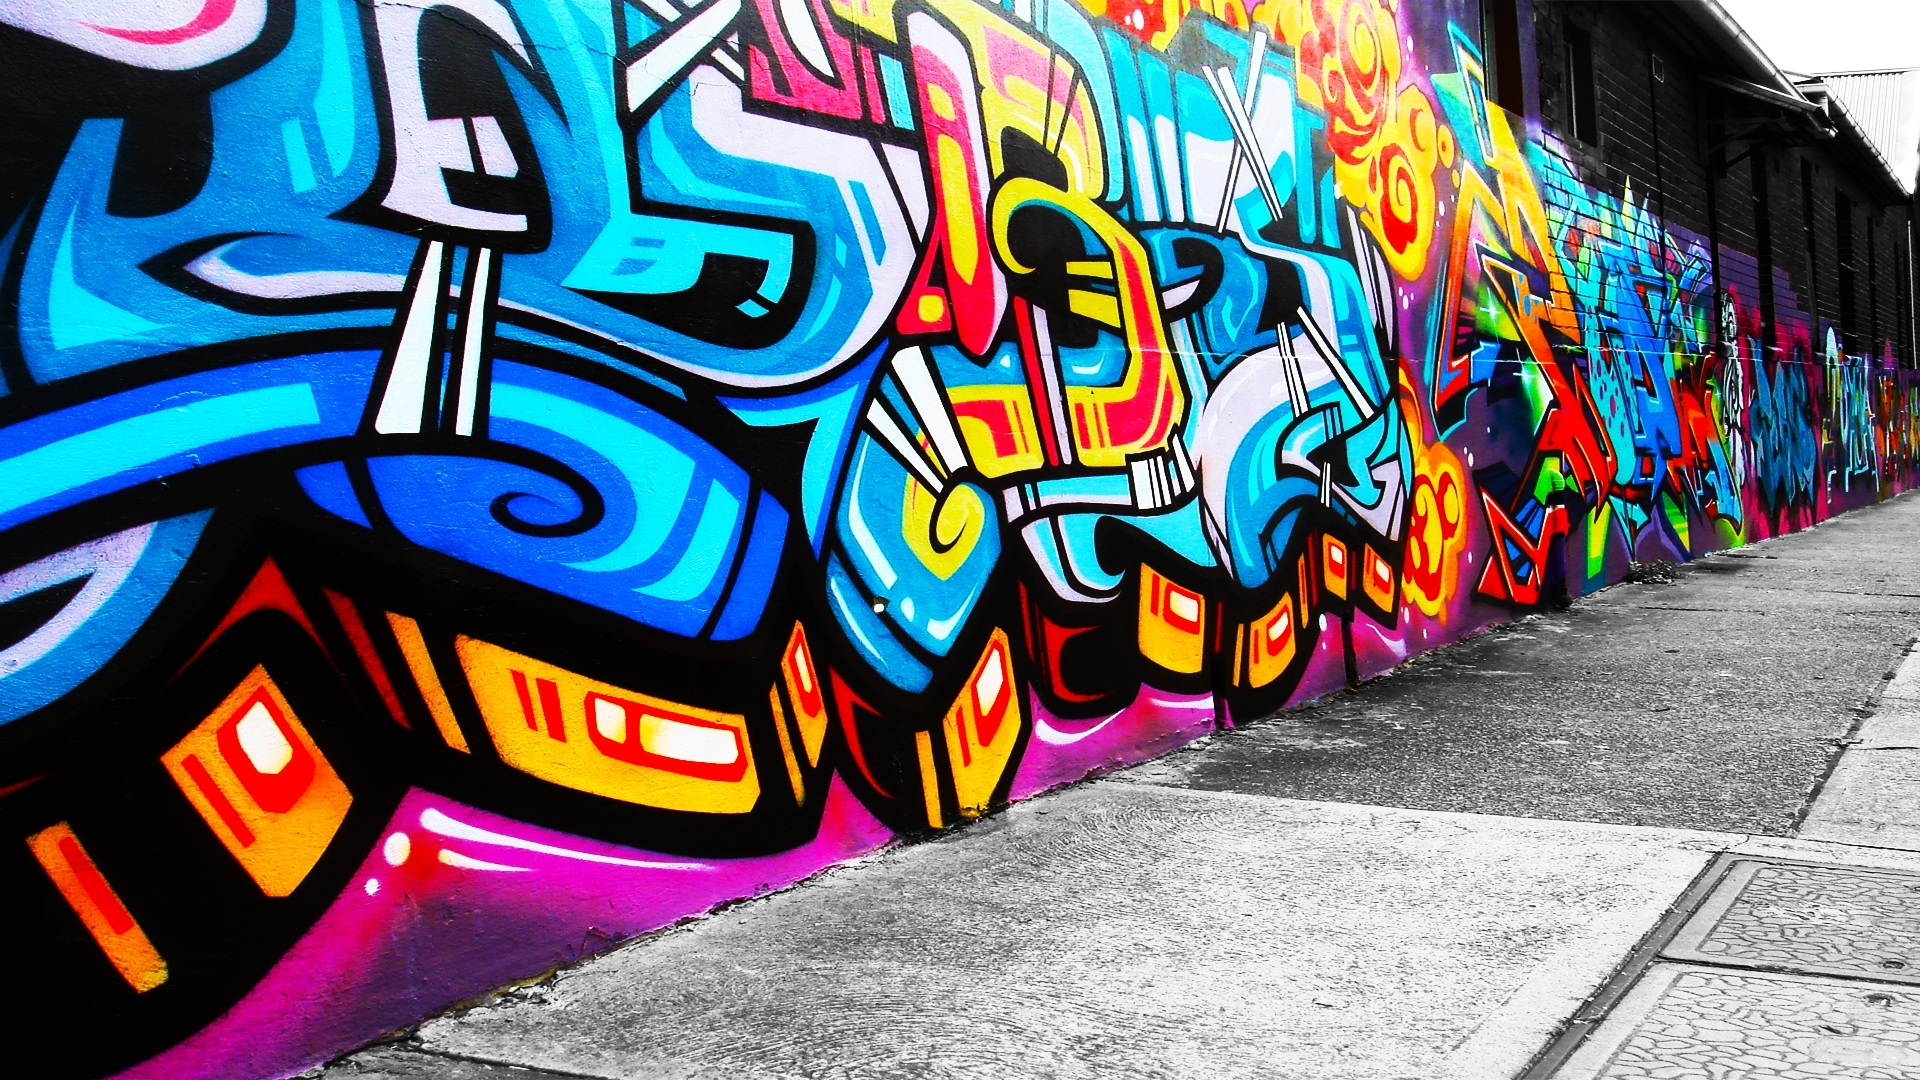 free graffiti art wallpaper images « long wallpapers